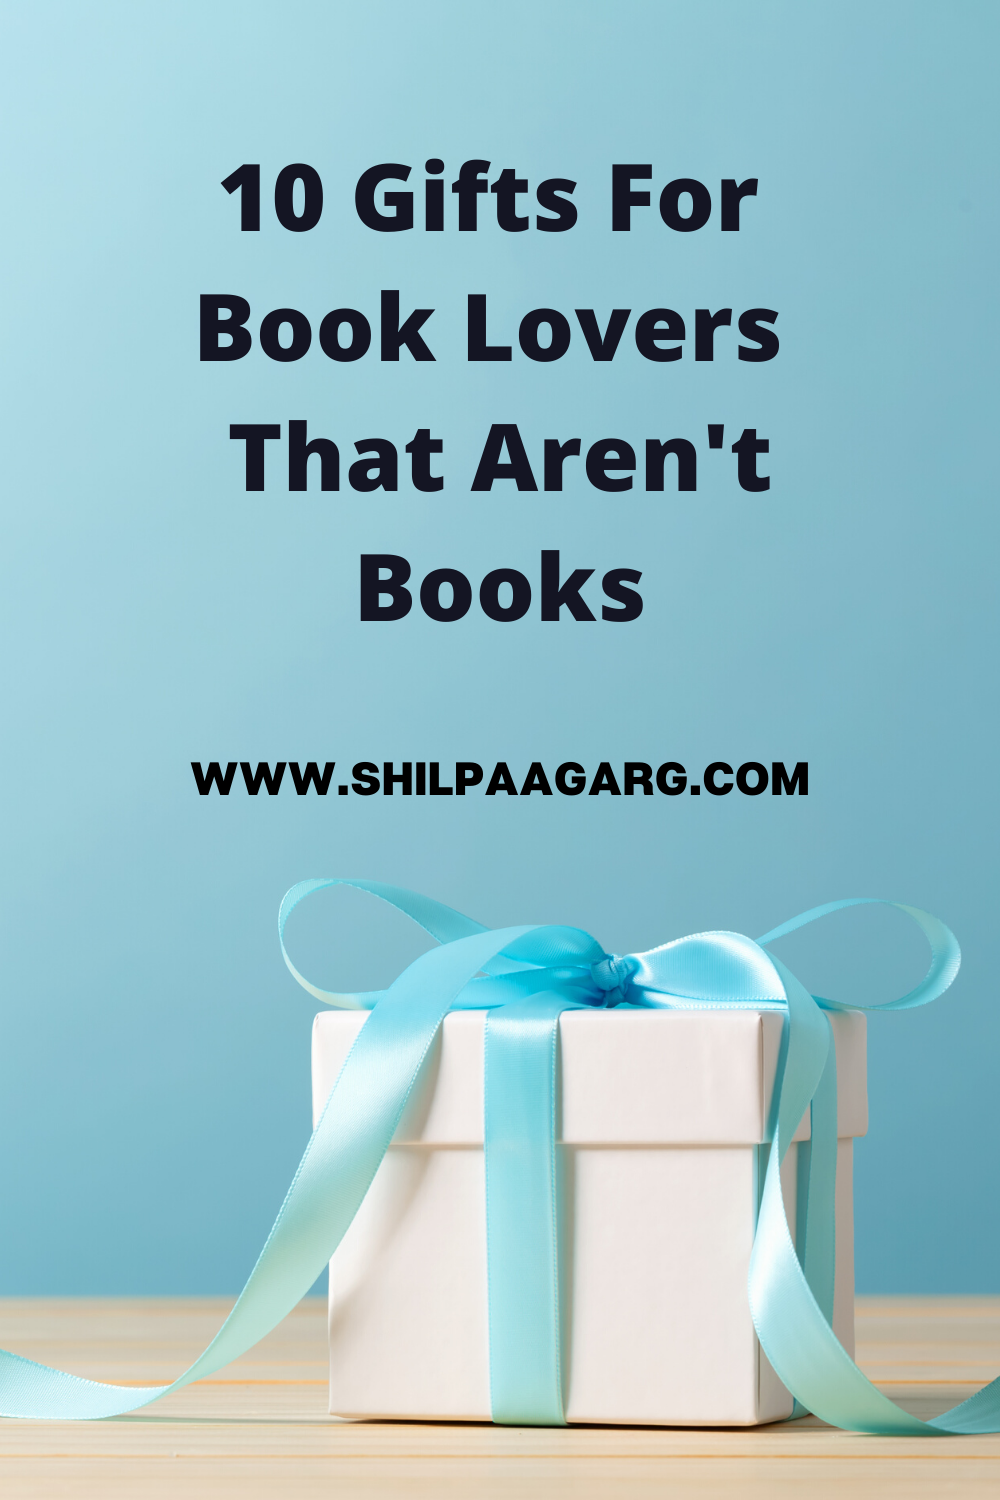 10 Gifts For Book Lovers That Aren't Books